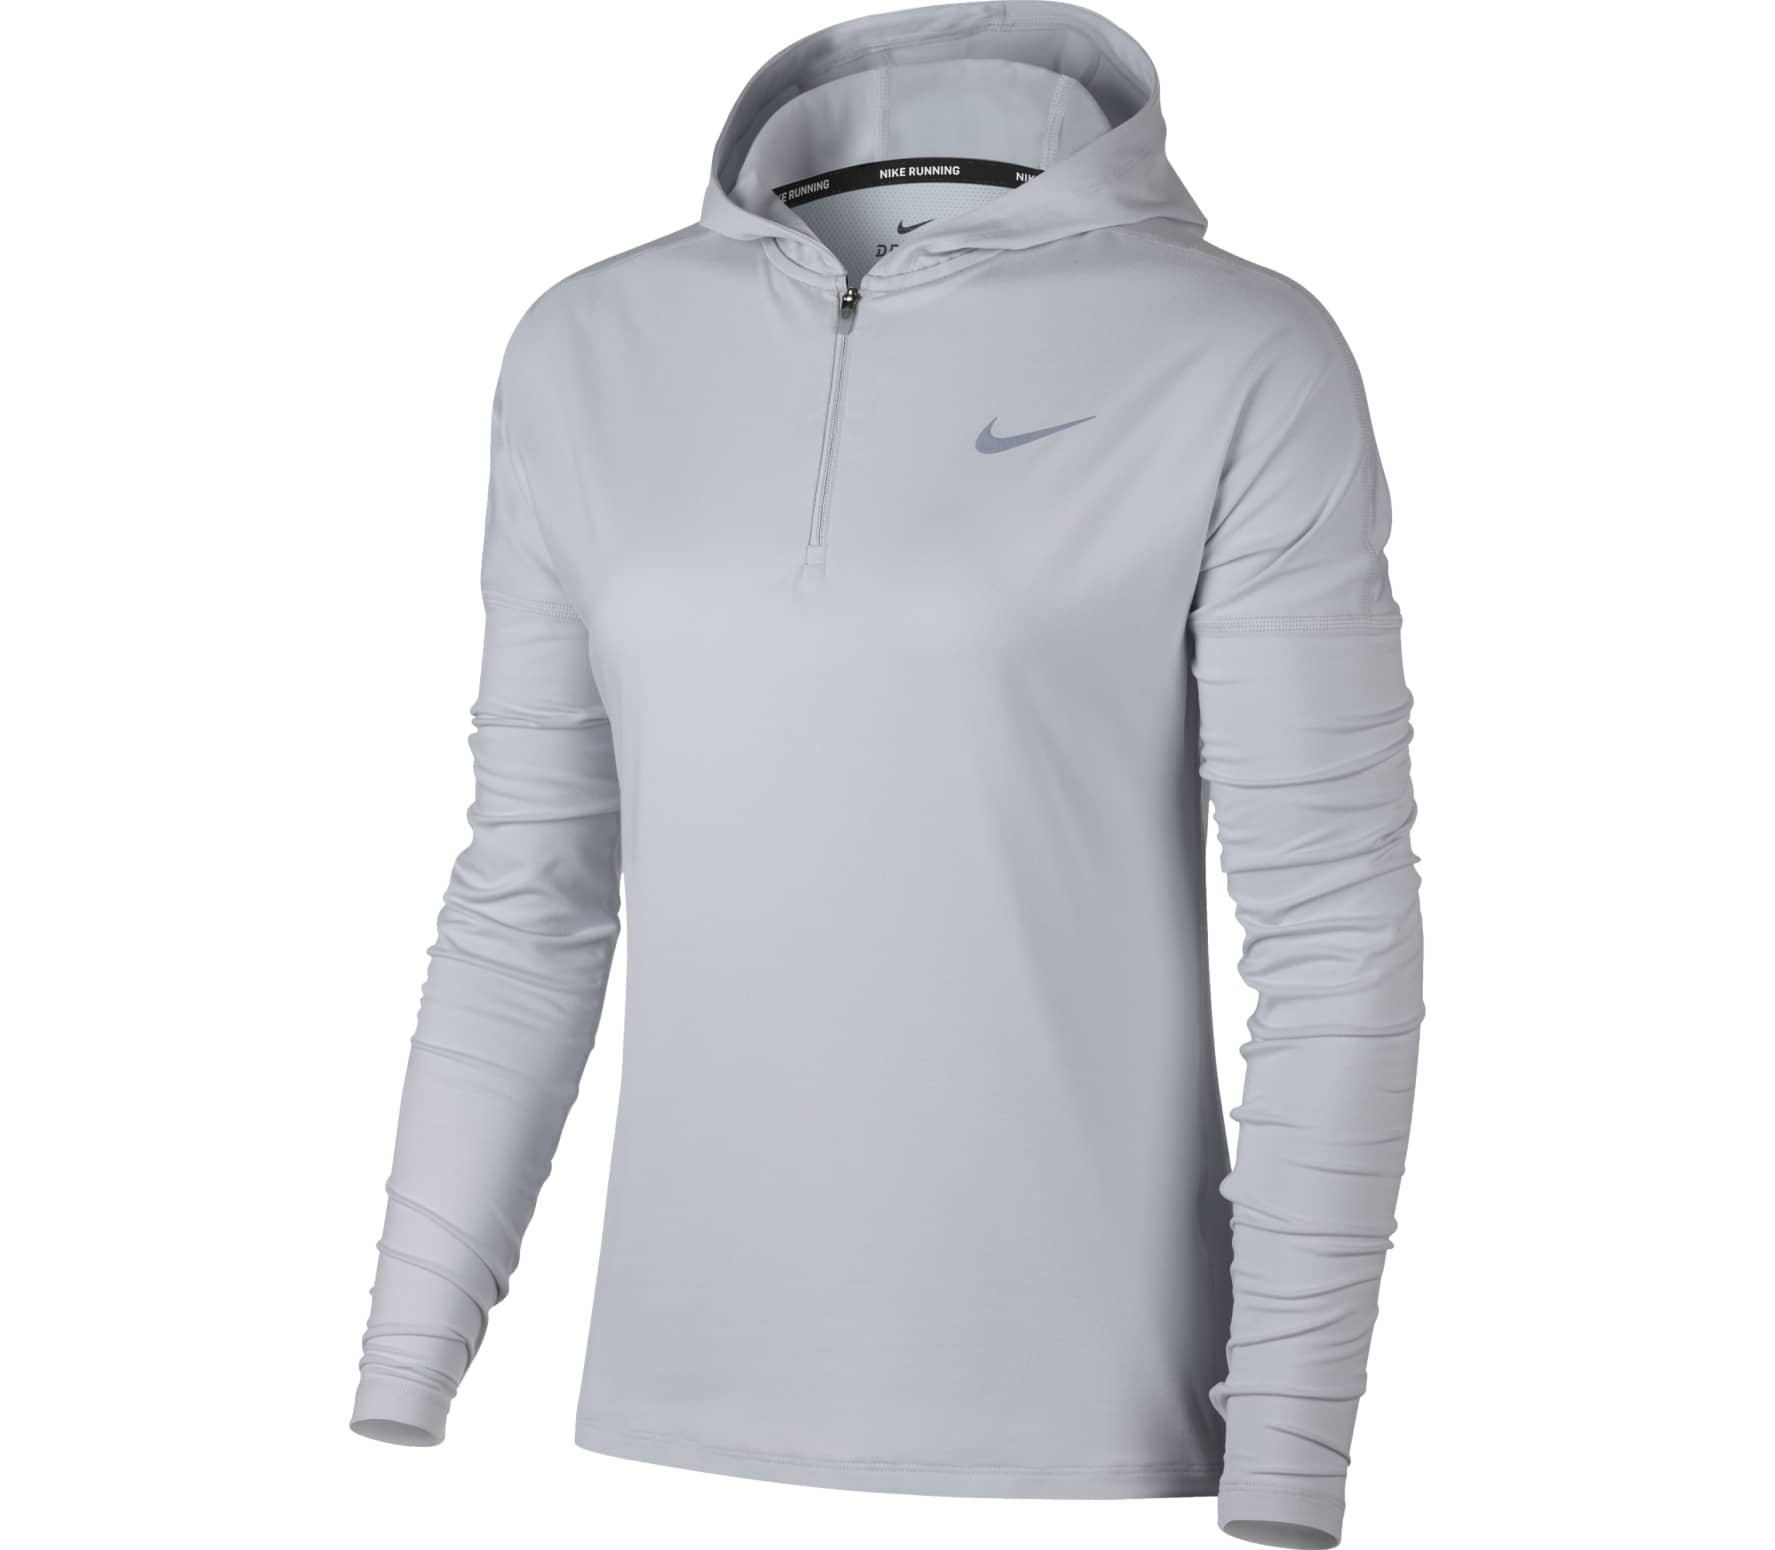 Con Mujer Sudadera Para Element Capucha Dry gris Nike Running De Ptwfq8n